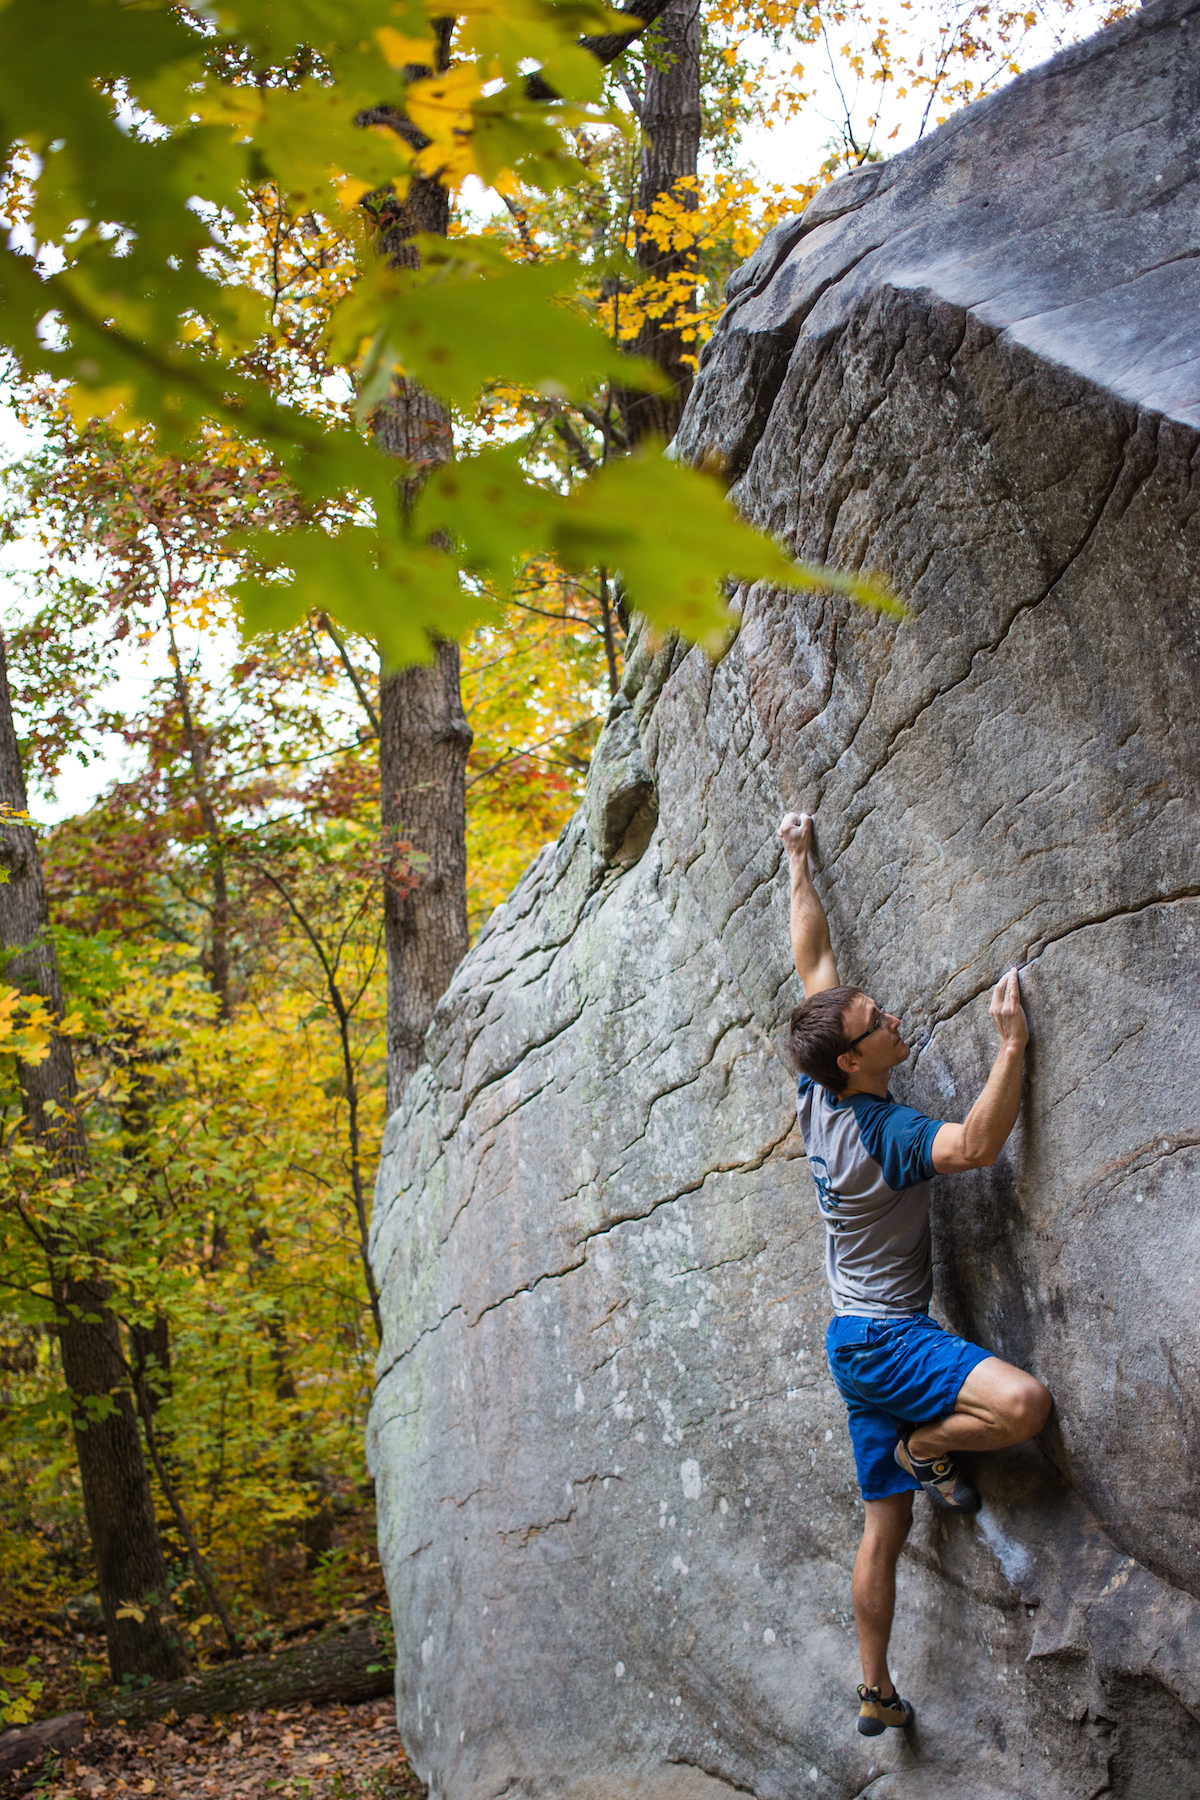 Seth Lytton on Con Artist (V7) at the Holy Boulder, IL.